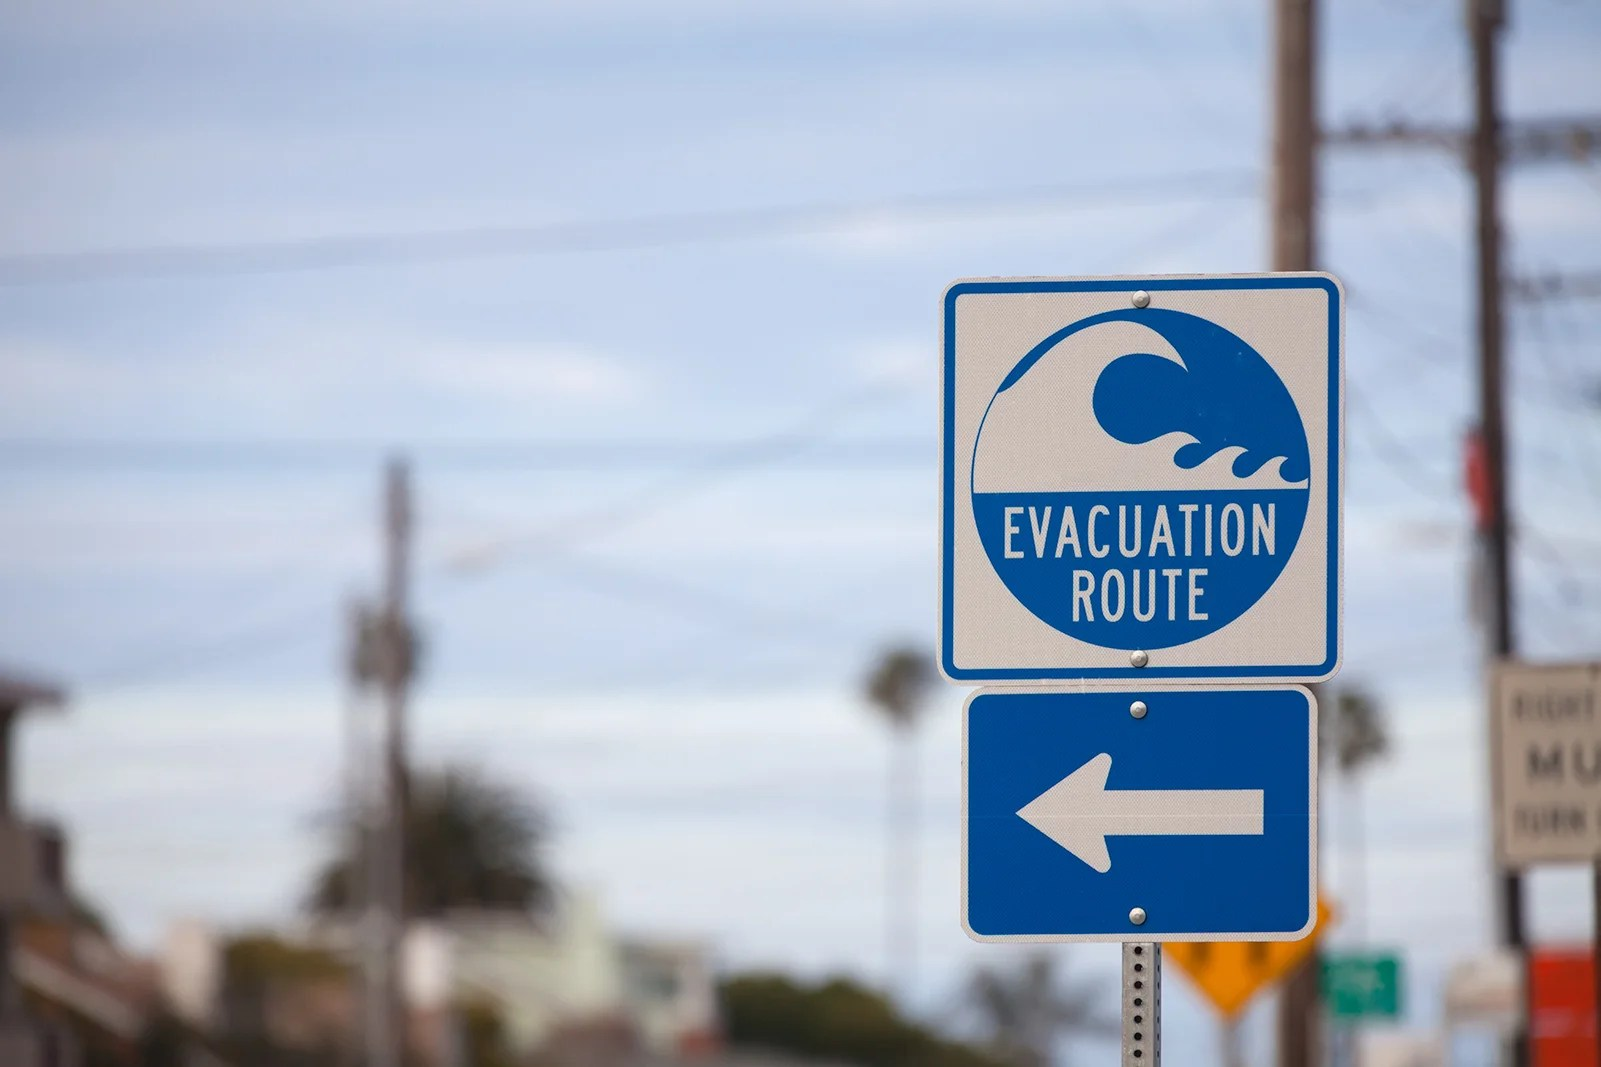 What's Covered by Credit Card Travel Accident and Emergency Evacuation Insurance?